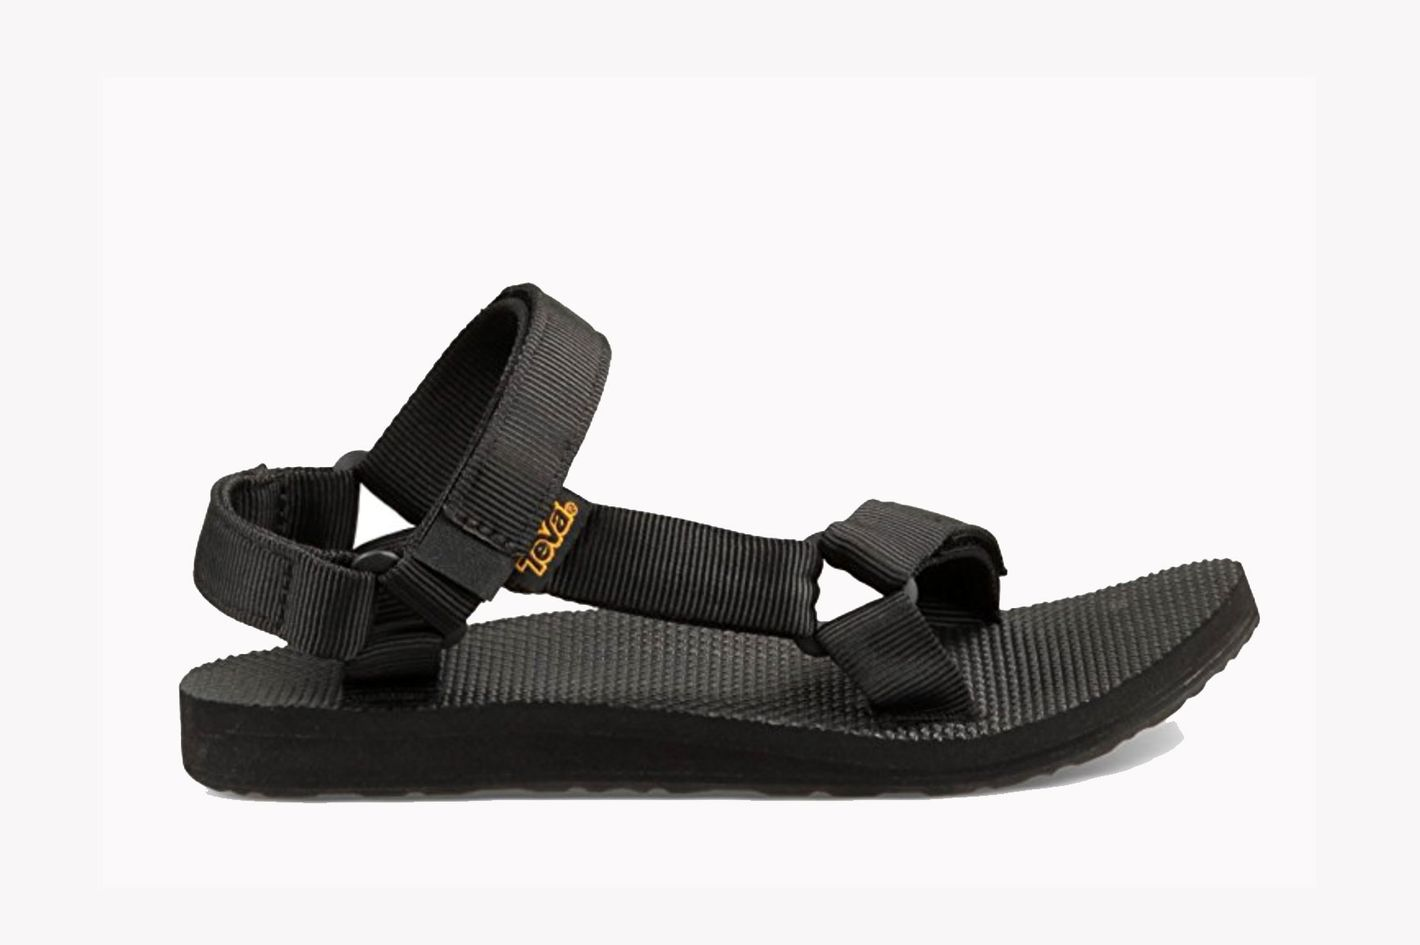 5c01036797fc92 Teva Women s Original Universal in Black. Teva Women s Original Universal  Sandal at Amazon. Buy. Get the Strategist s Newsletter